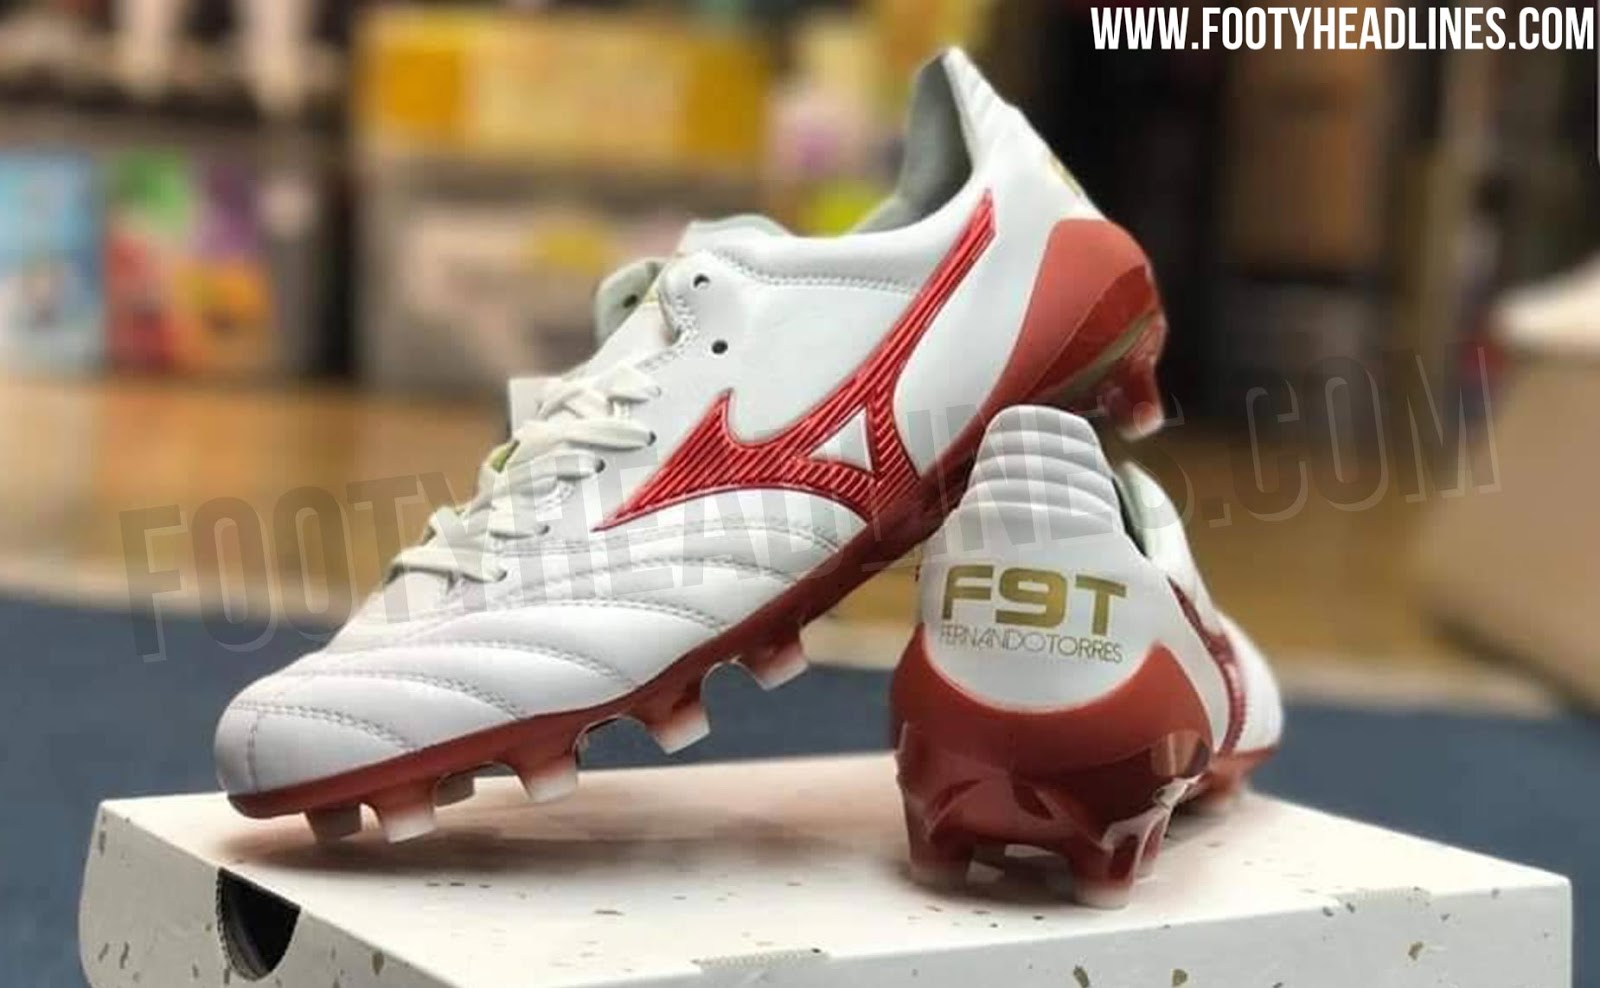 best service 4ed7e 79227 A limited-edition release, only 1,999 pairs of the Mizuno Morelia Neo II F9T  football boots are available. The retail at a price of 300 Euro.